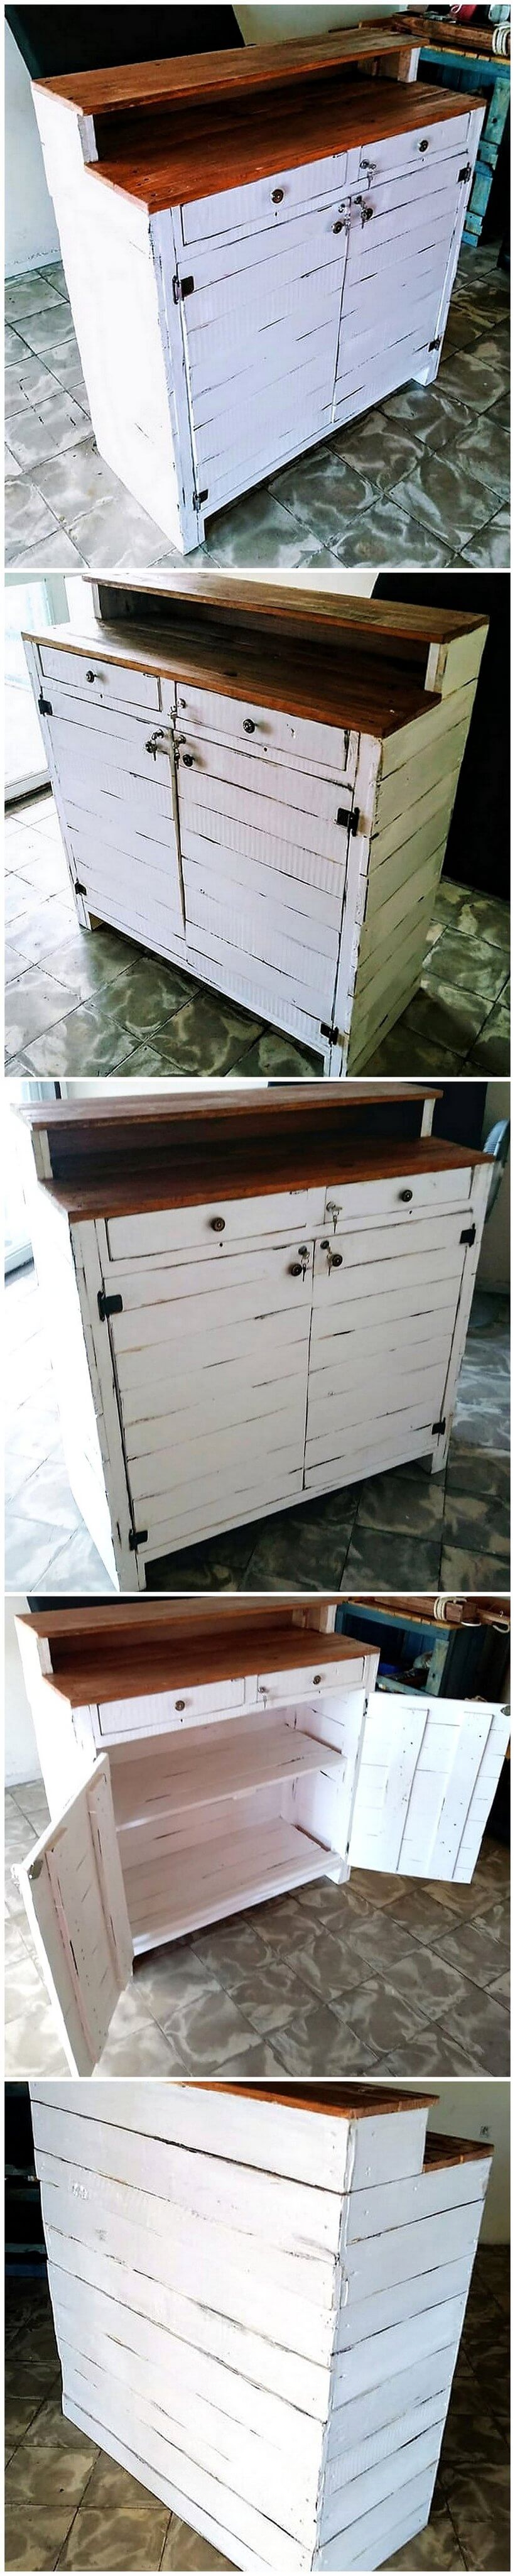 wooden pallet reception or bar counter